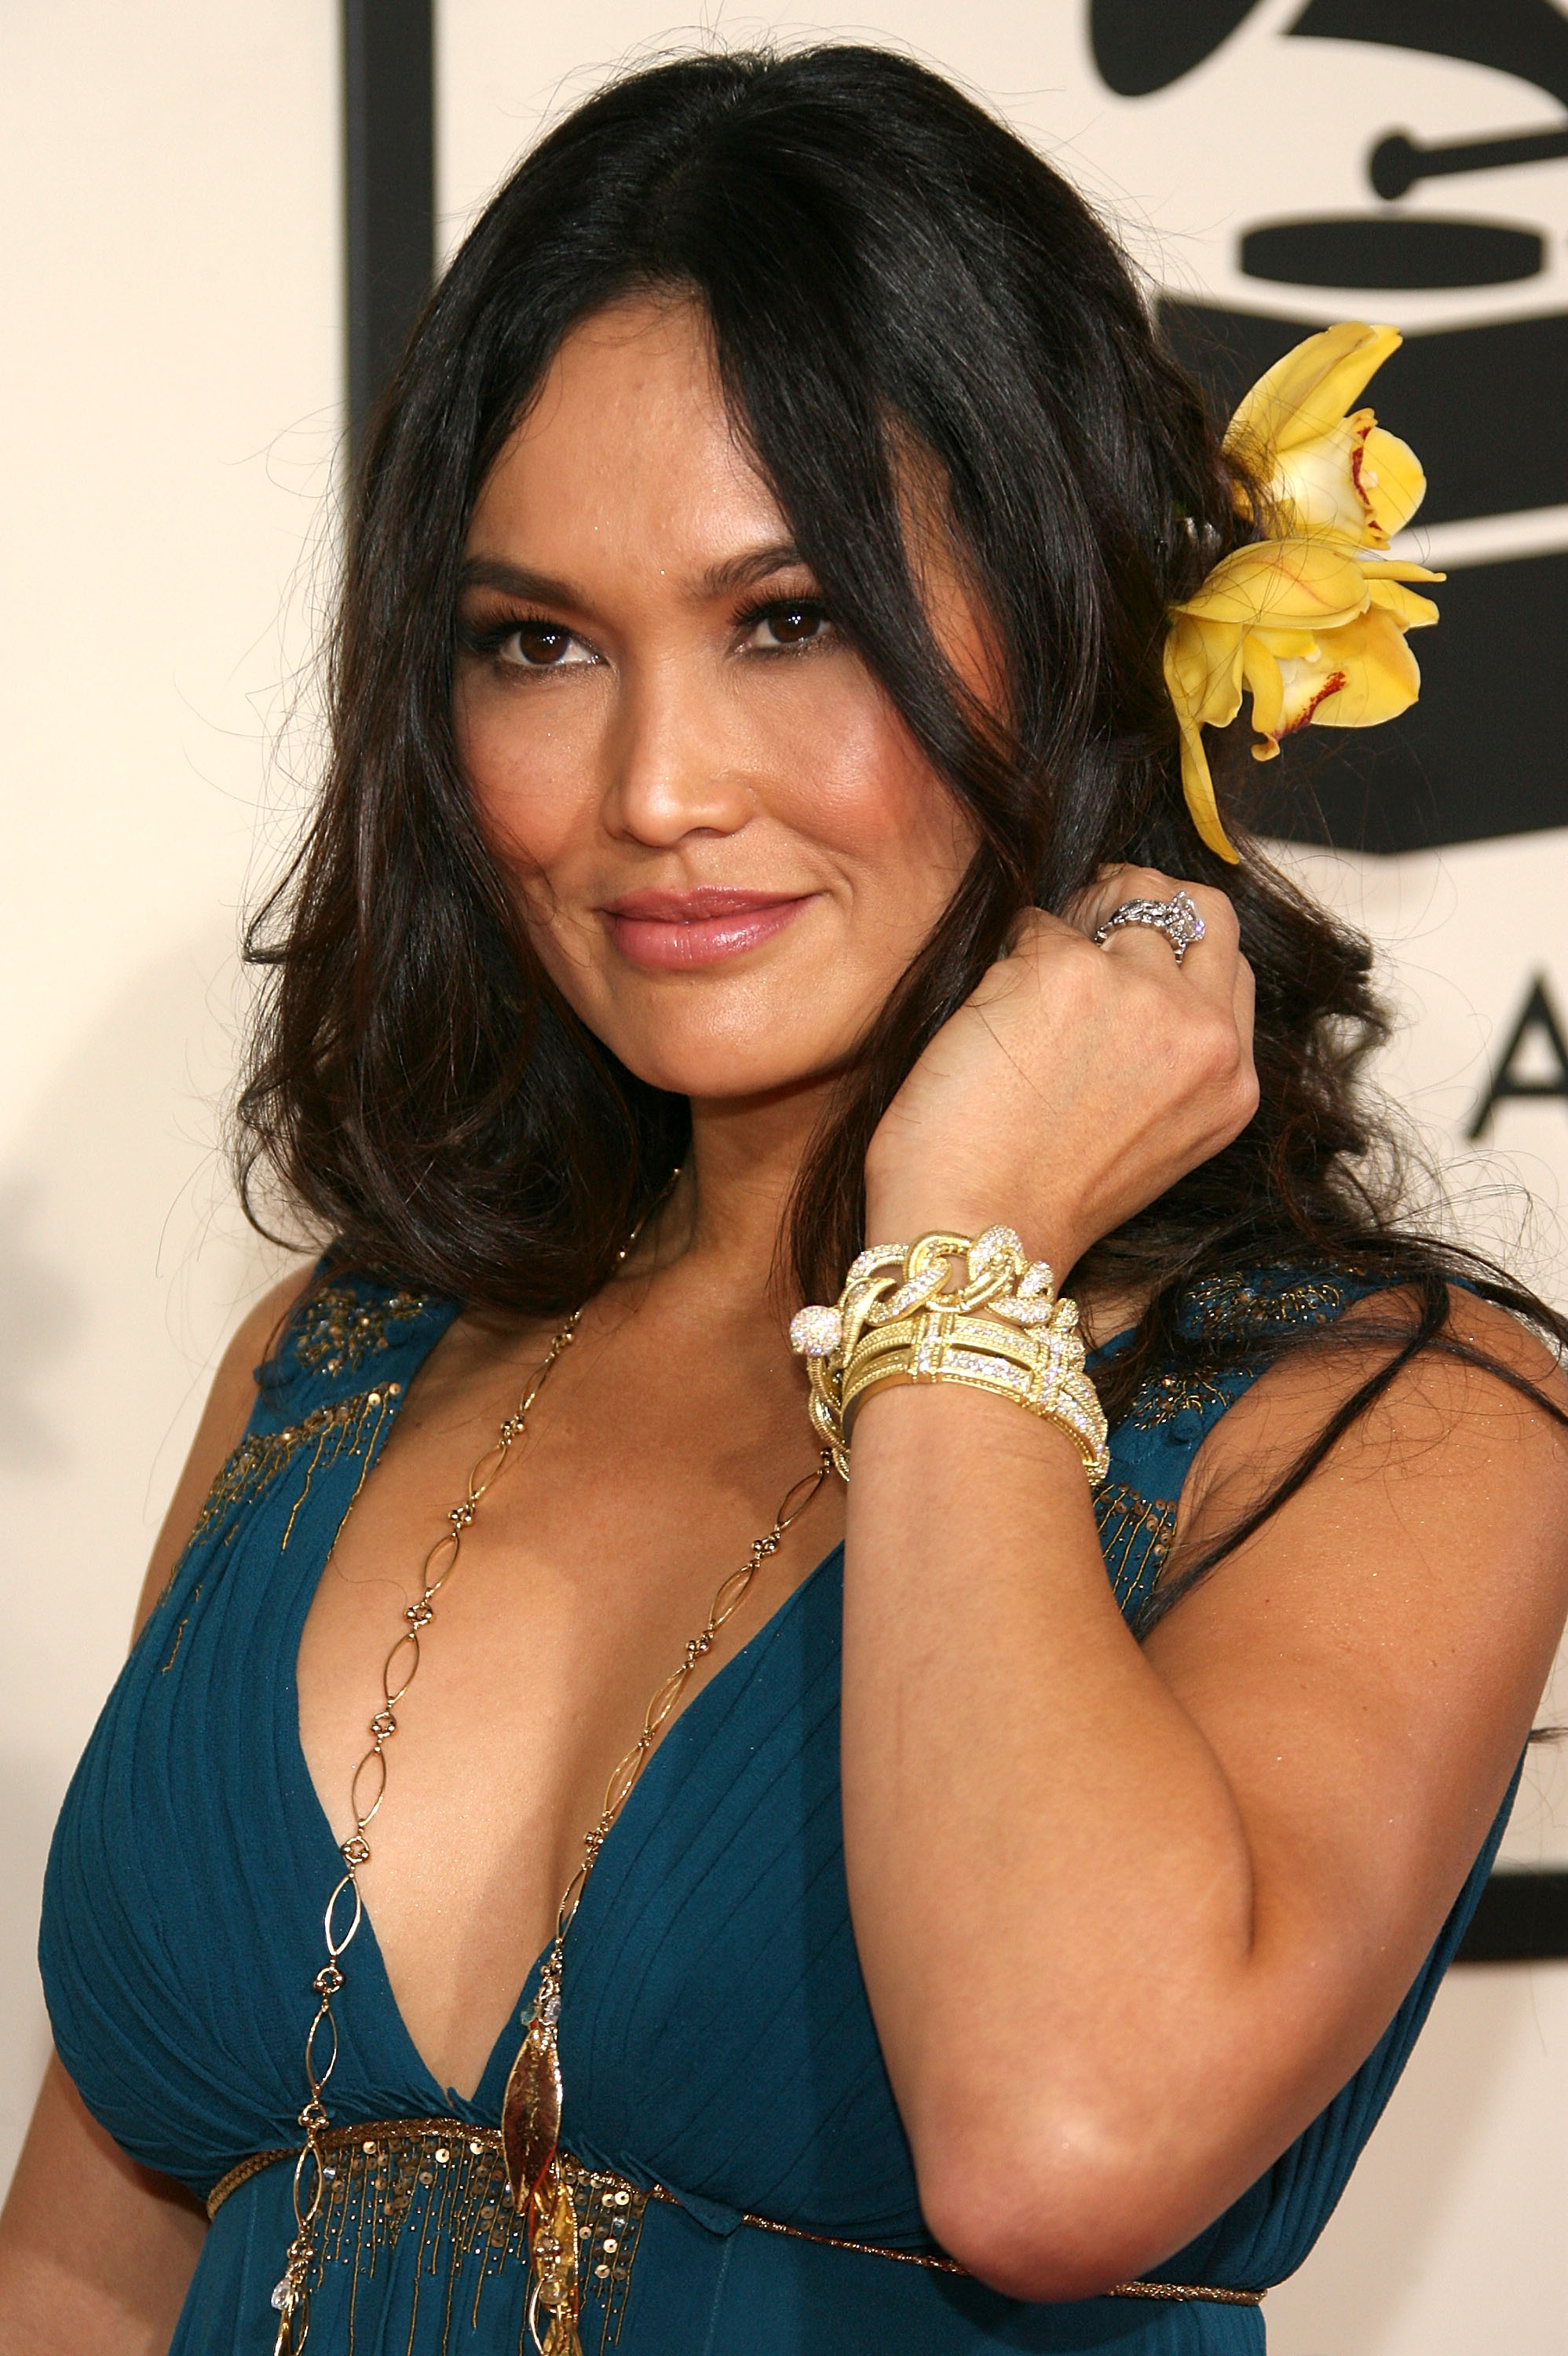 92863_by_Septimiu_Tia_Carrere-50th_Annual_Grammy_Awards_Arrivals-02_165_122_611lo.jpg